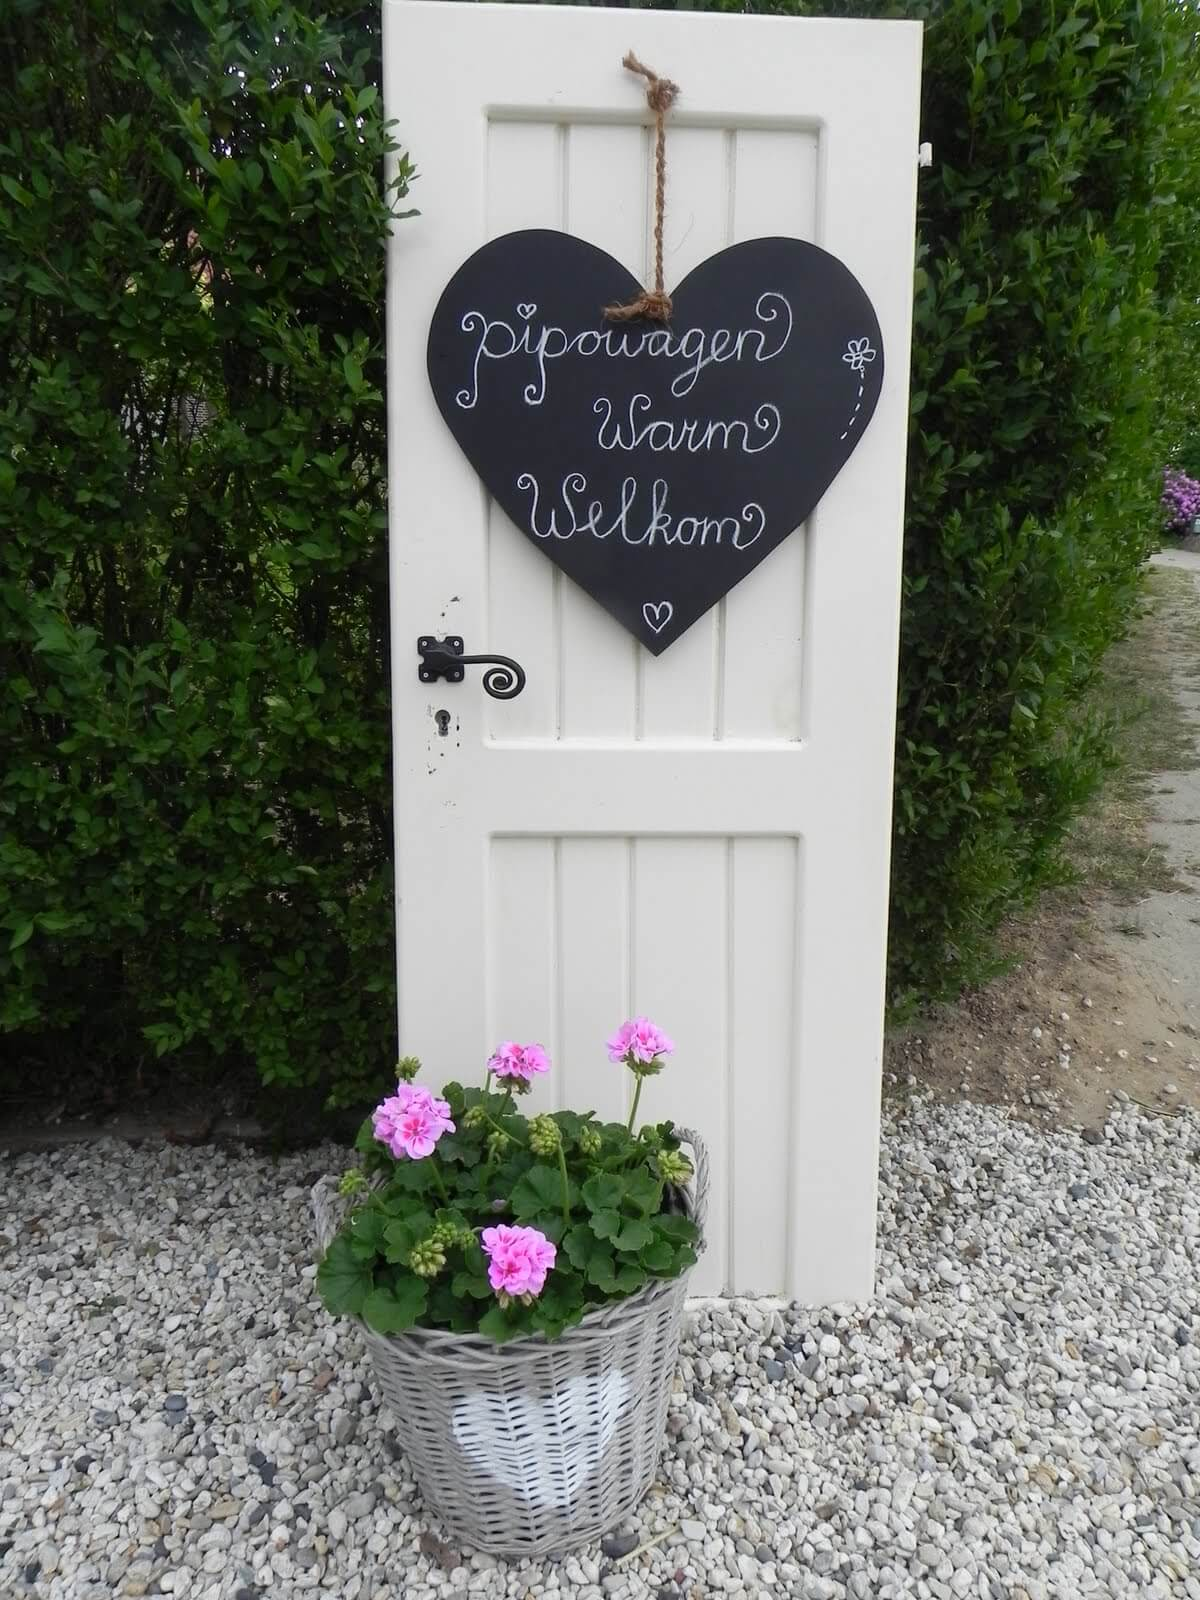 Old Door Outdoor Decor Idea with Chalkboard Signs